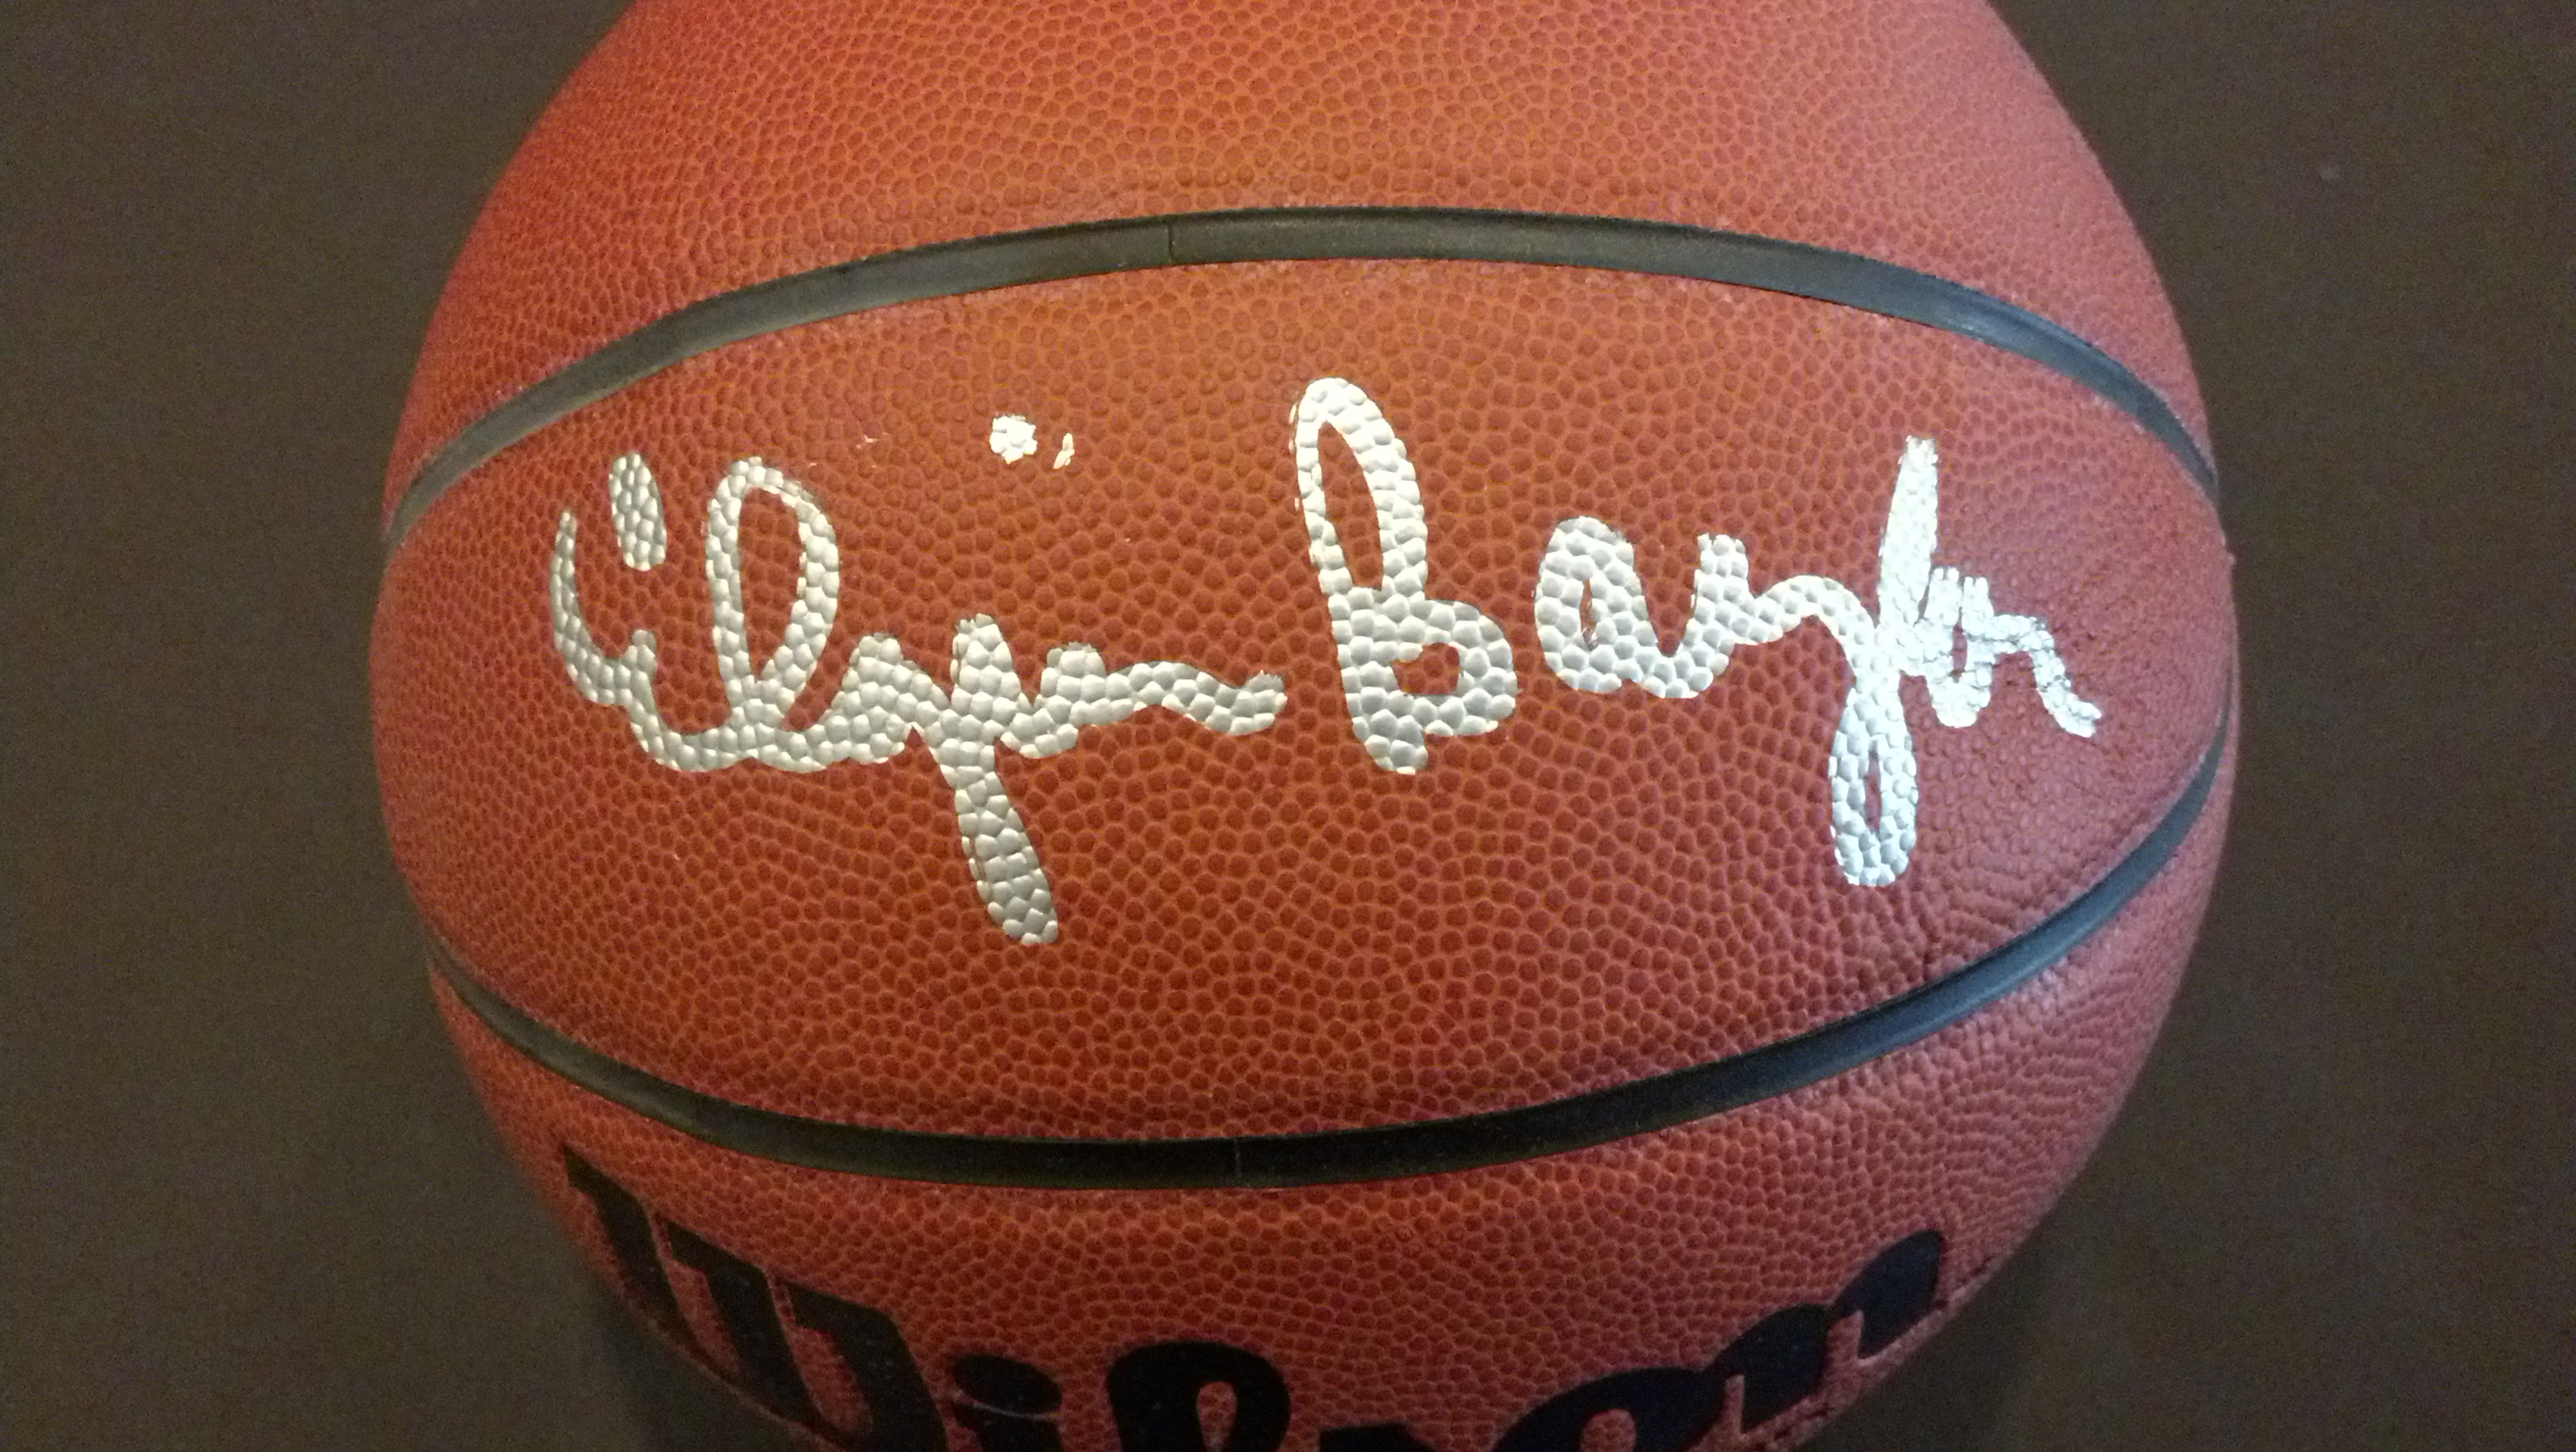 Elgin Baylor Autographed Basketball - GAI (Los Angeles Lakers)